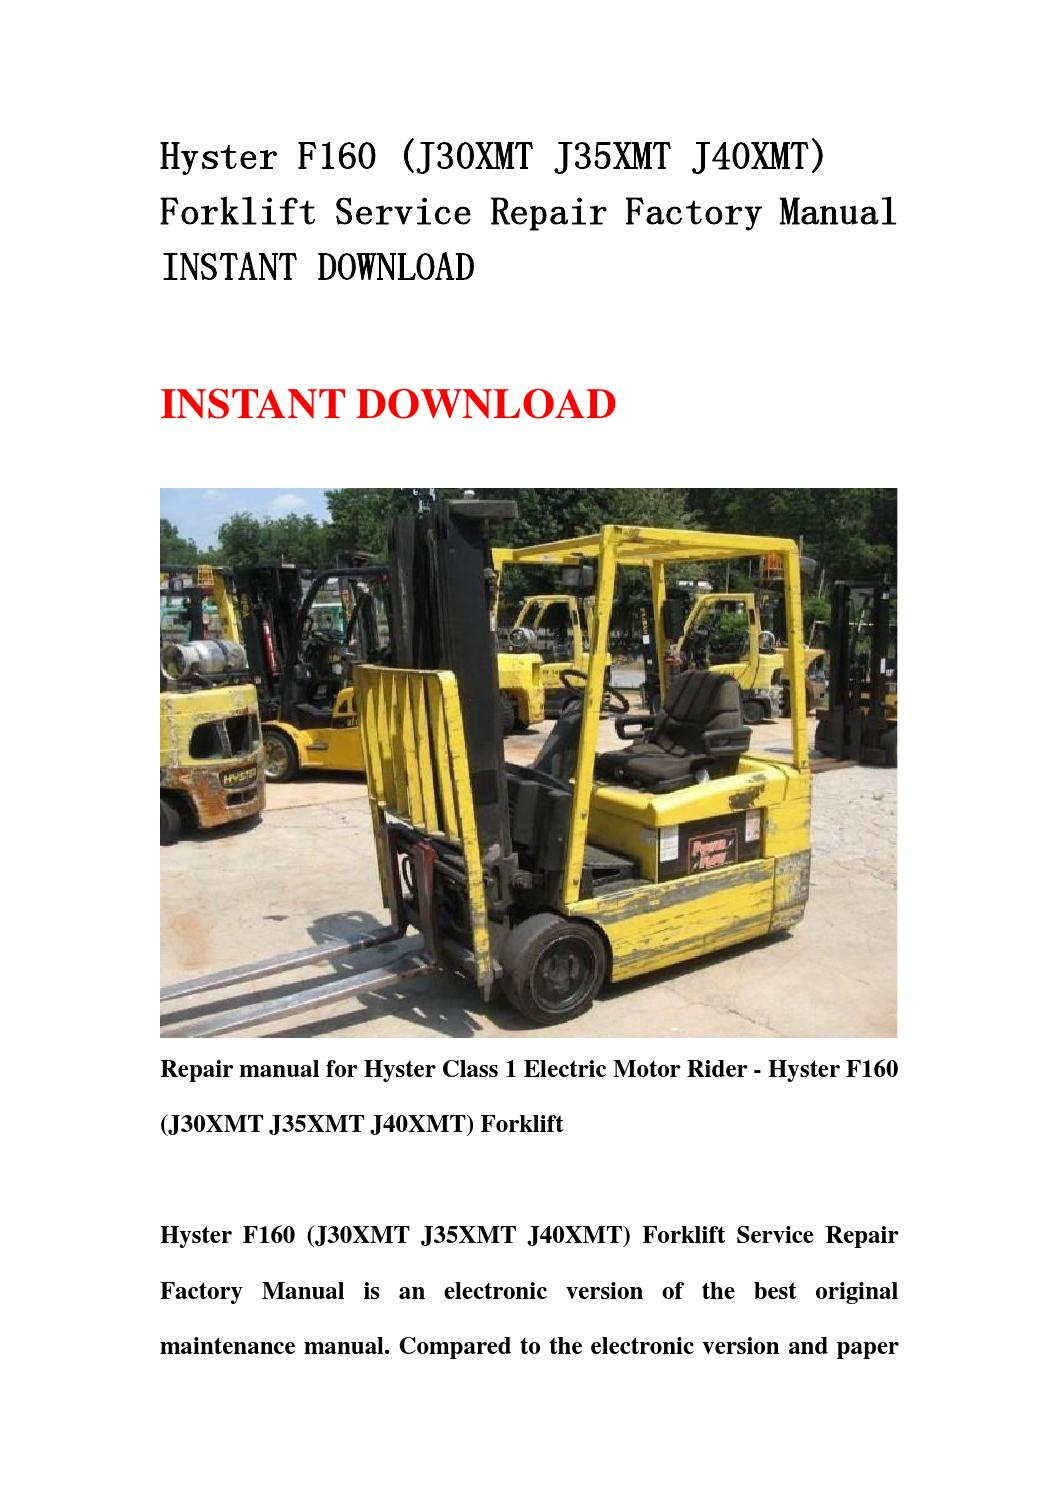 Hyster F160  J30xmt J35xmt J40xmt  Forklift Service Repair